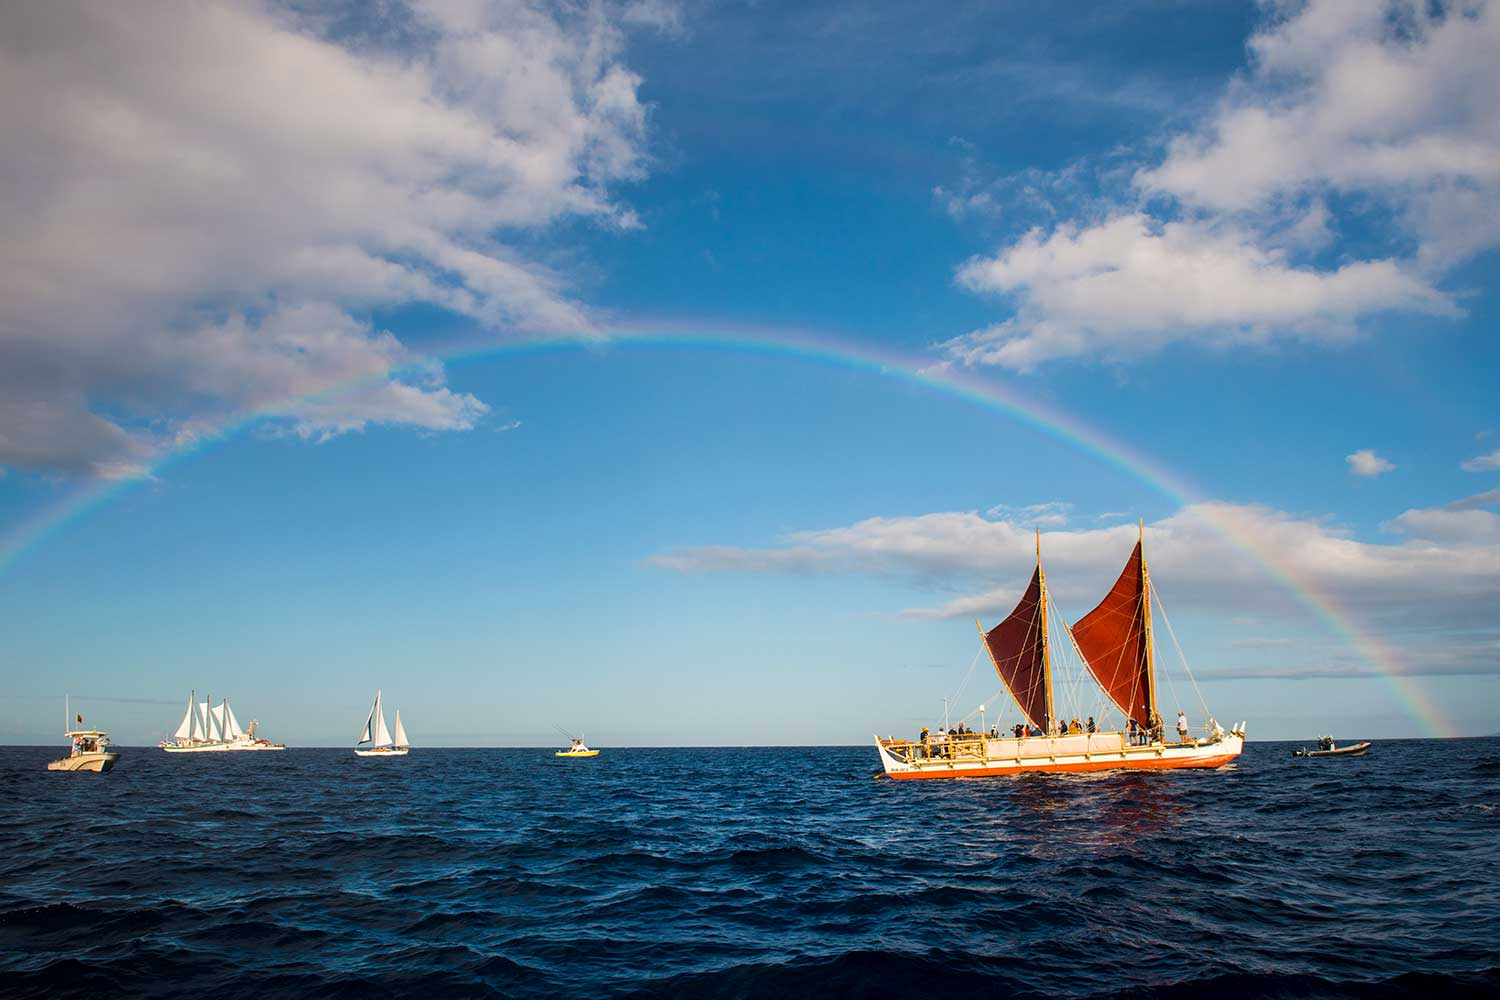 The film Moananuiākea recounts the worldwide voyage of Hōkūle'a. It's a story of oceanic adventure, indigenous resilience, and environmental activism.